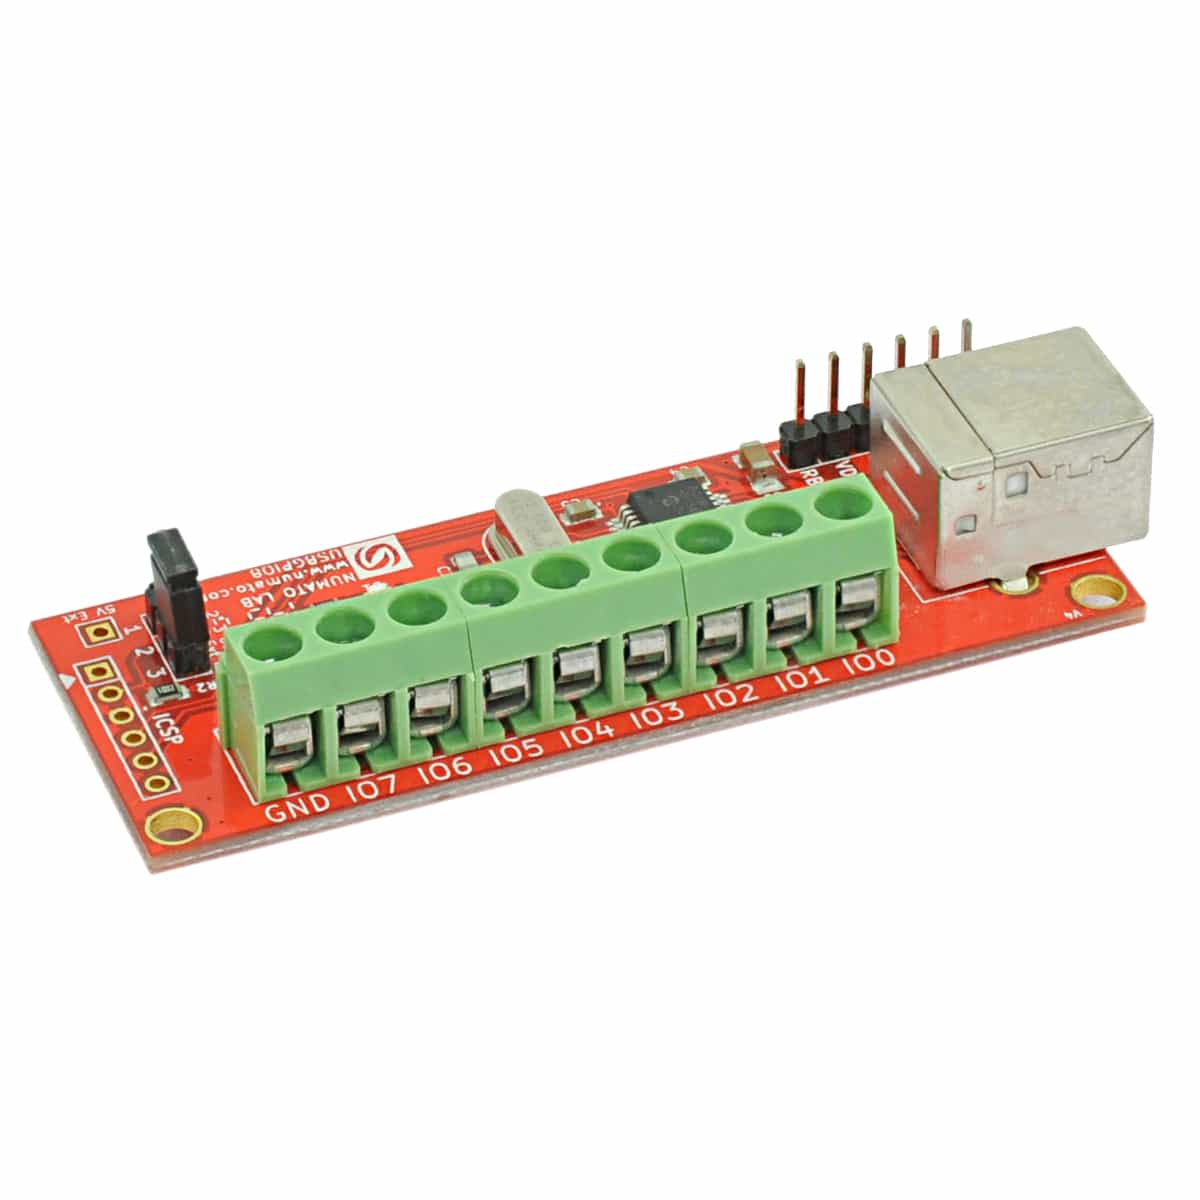 8 Channel Usb Gpio Module With Analog Inputs Numato Lab 64 Bit Computer On